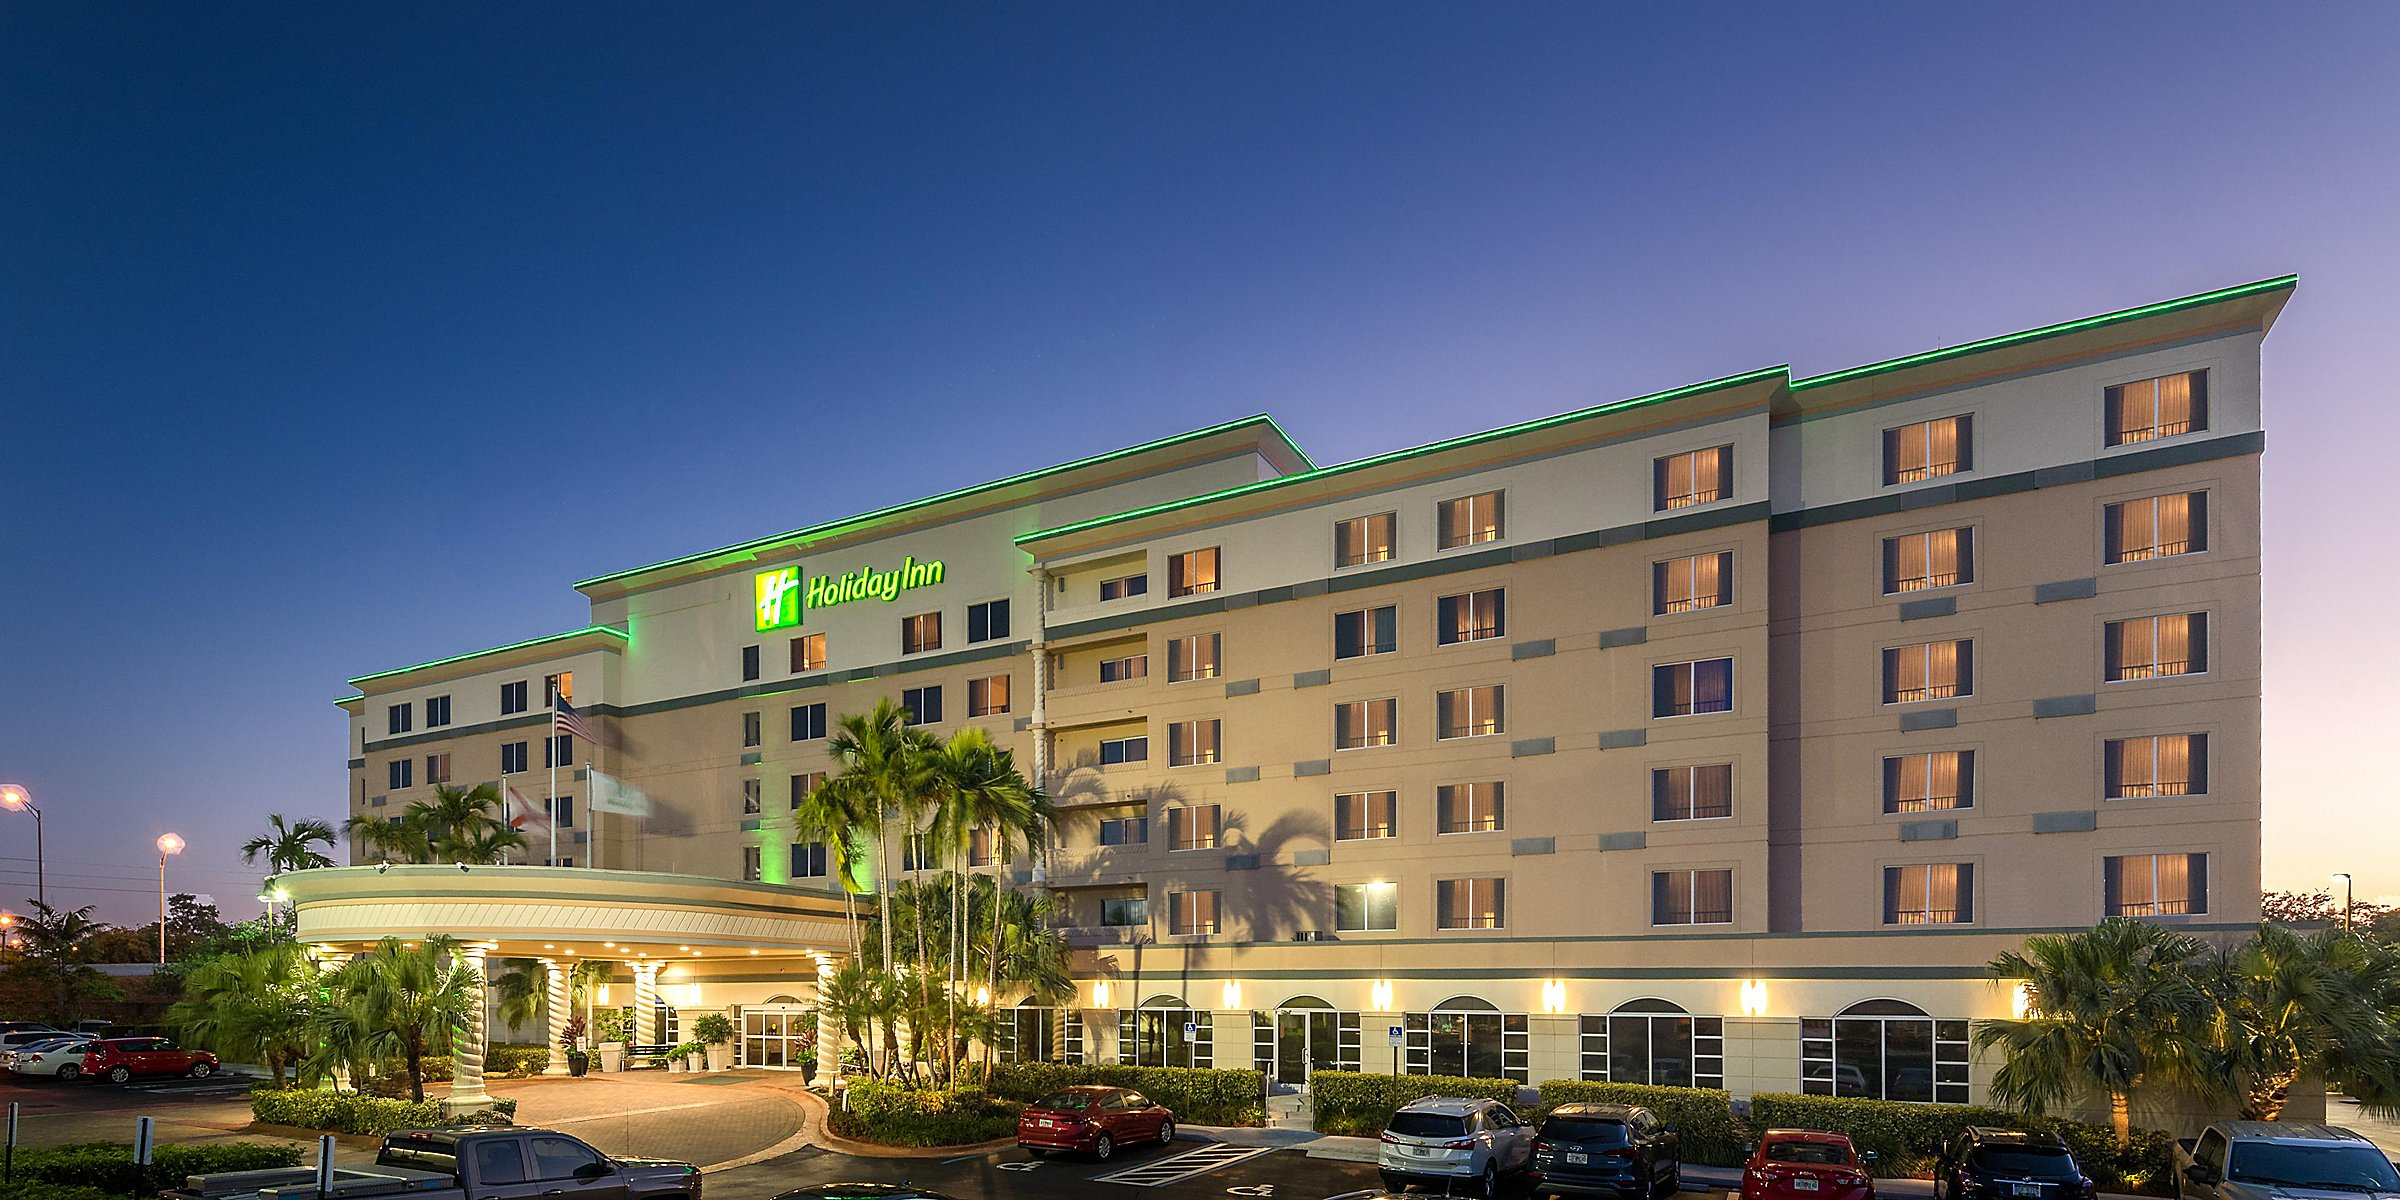 Hotels near Fort Lauderdale Airport (FLL)   Holiday Inn Ft